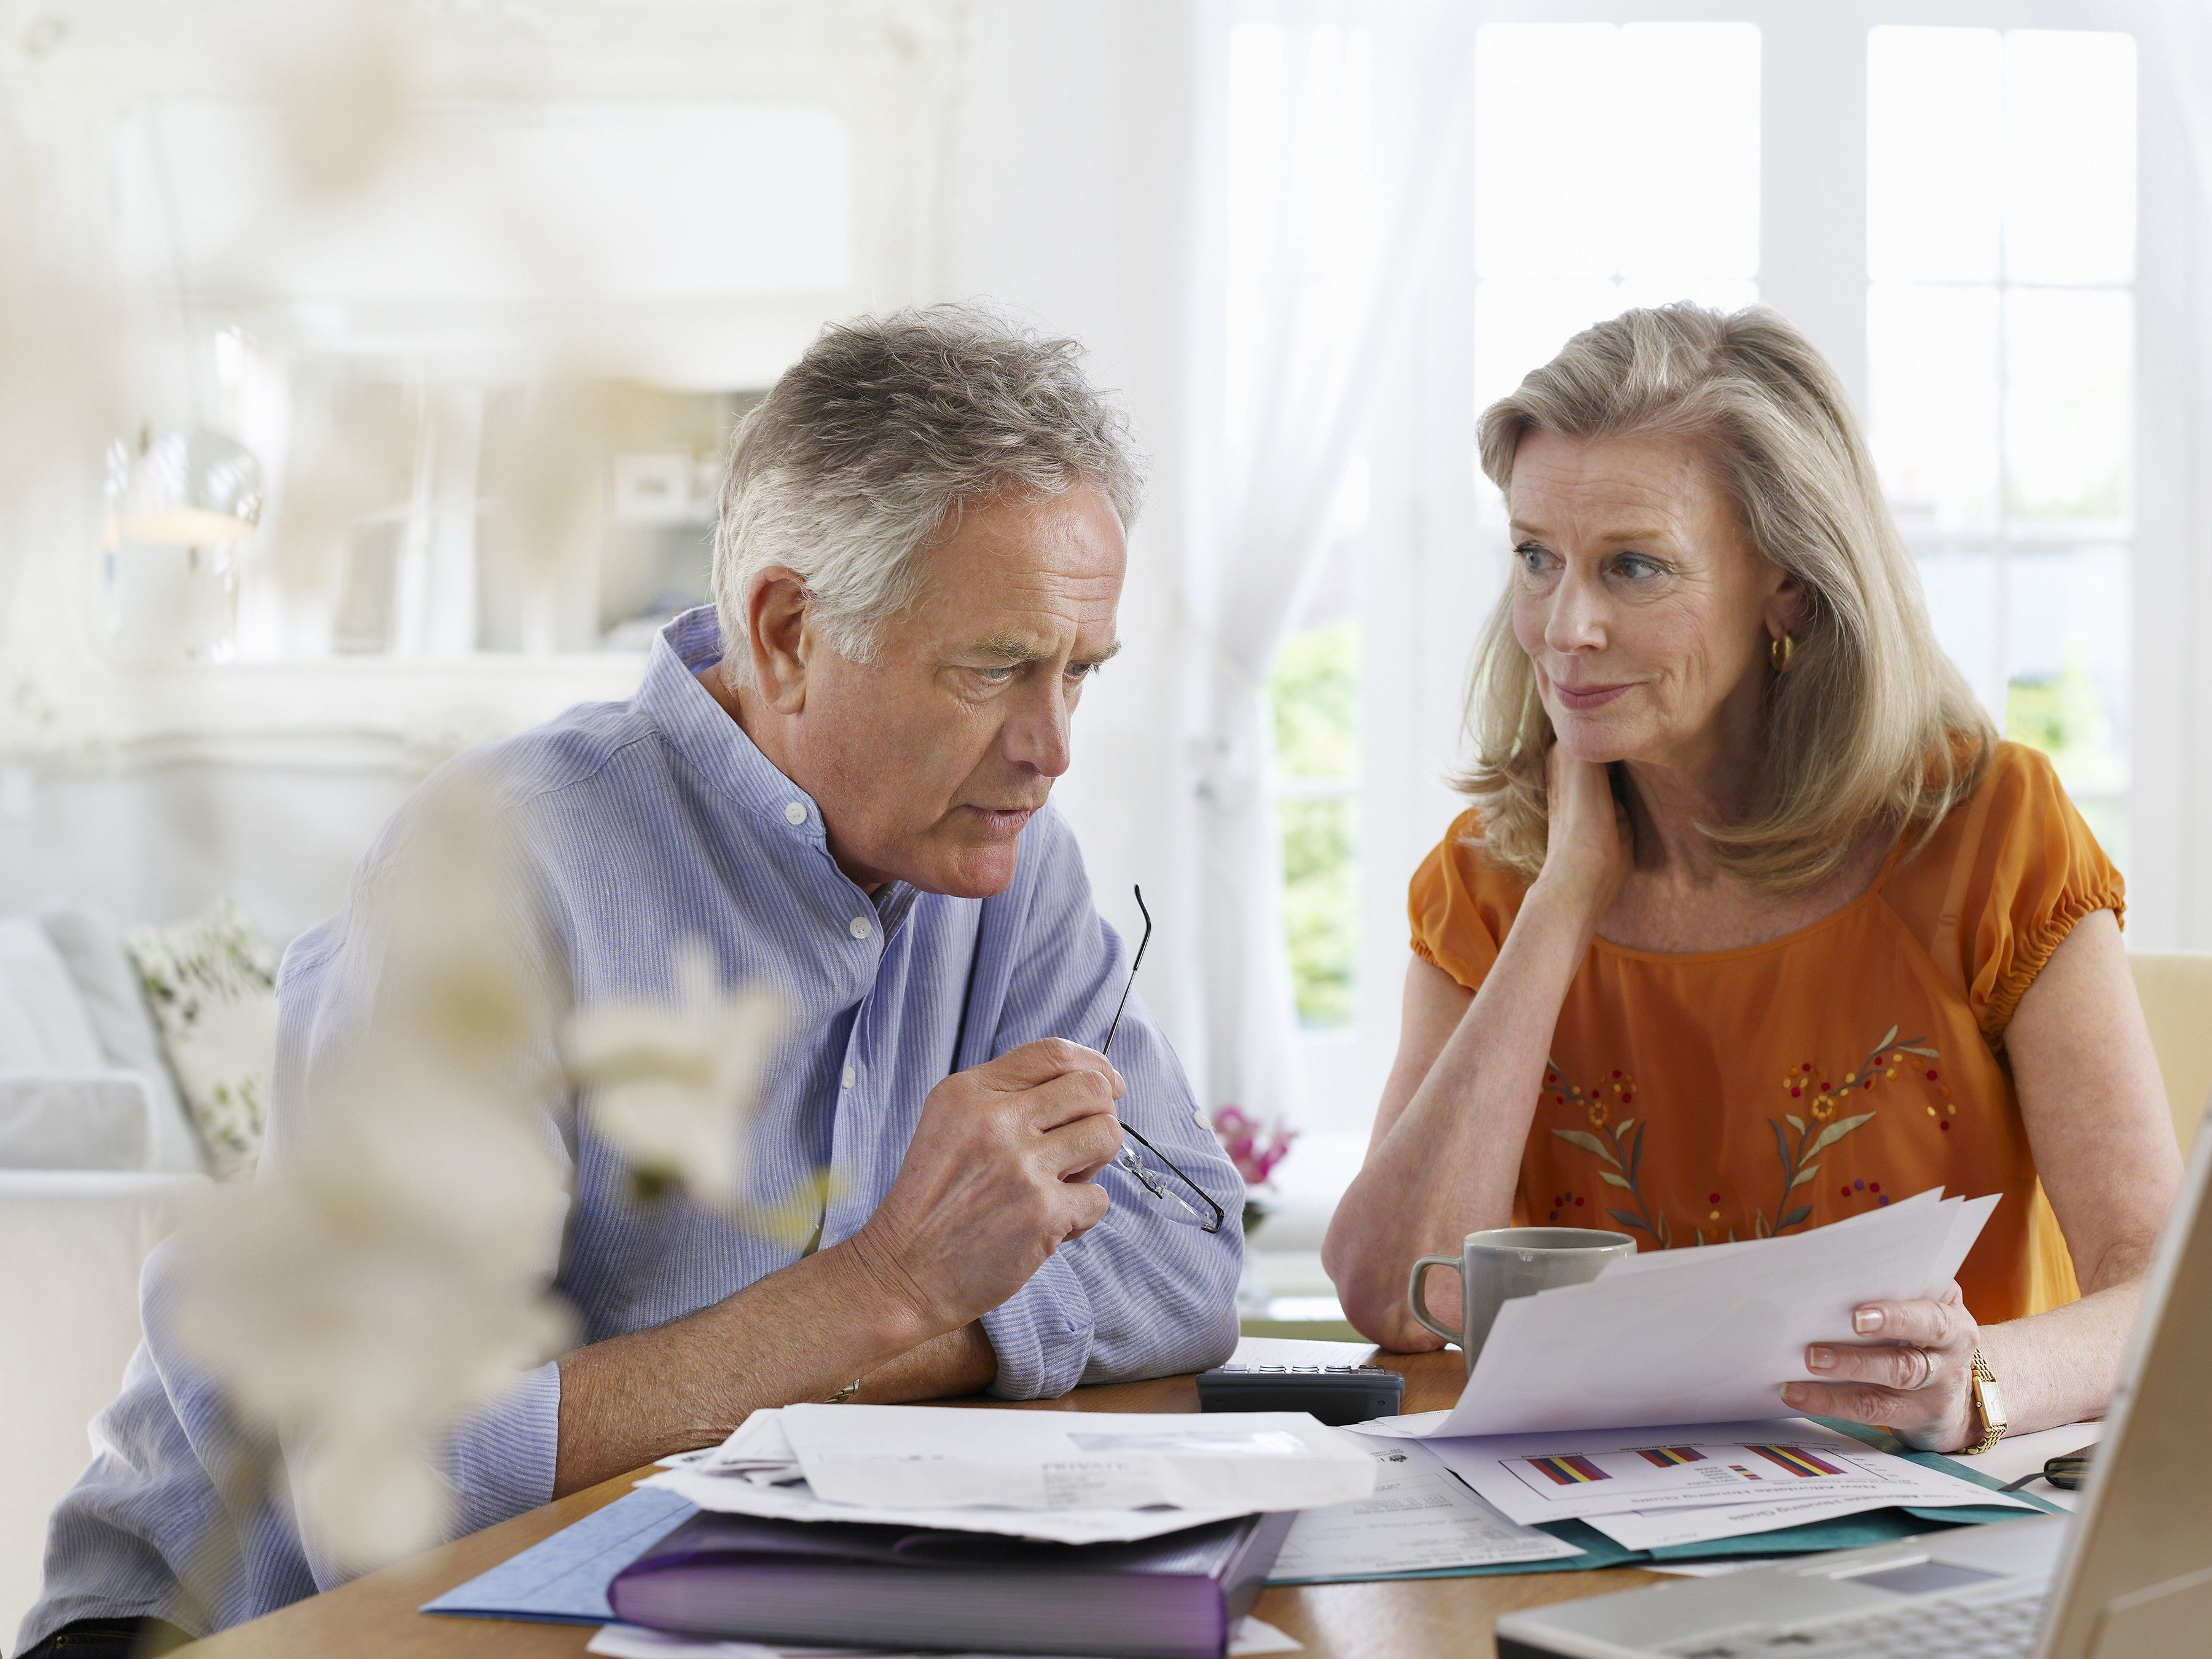 Confused about income tax? You're not alone!